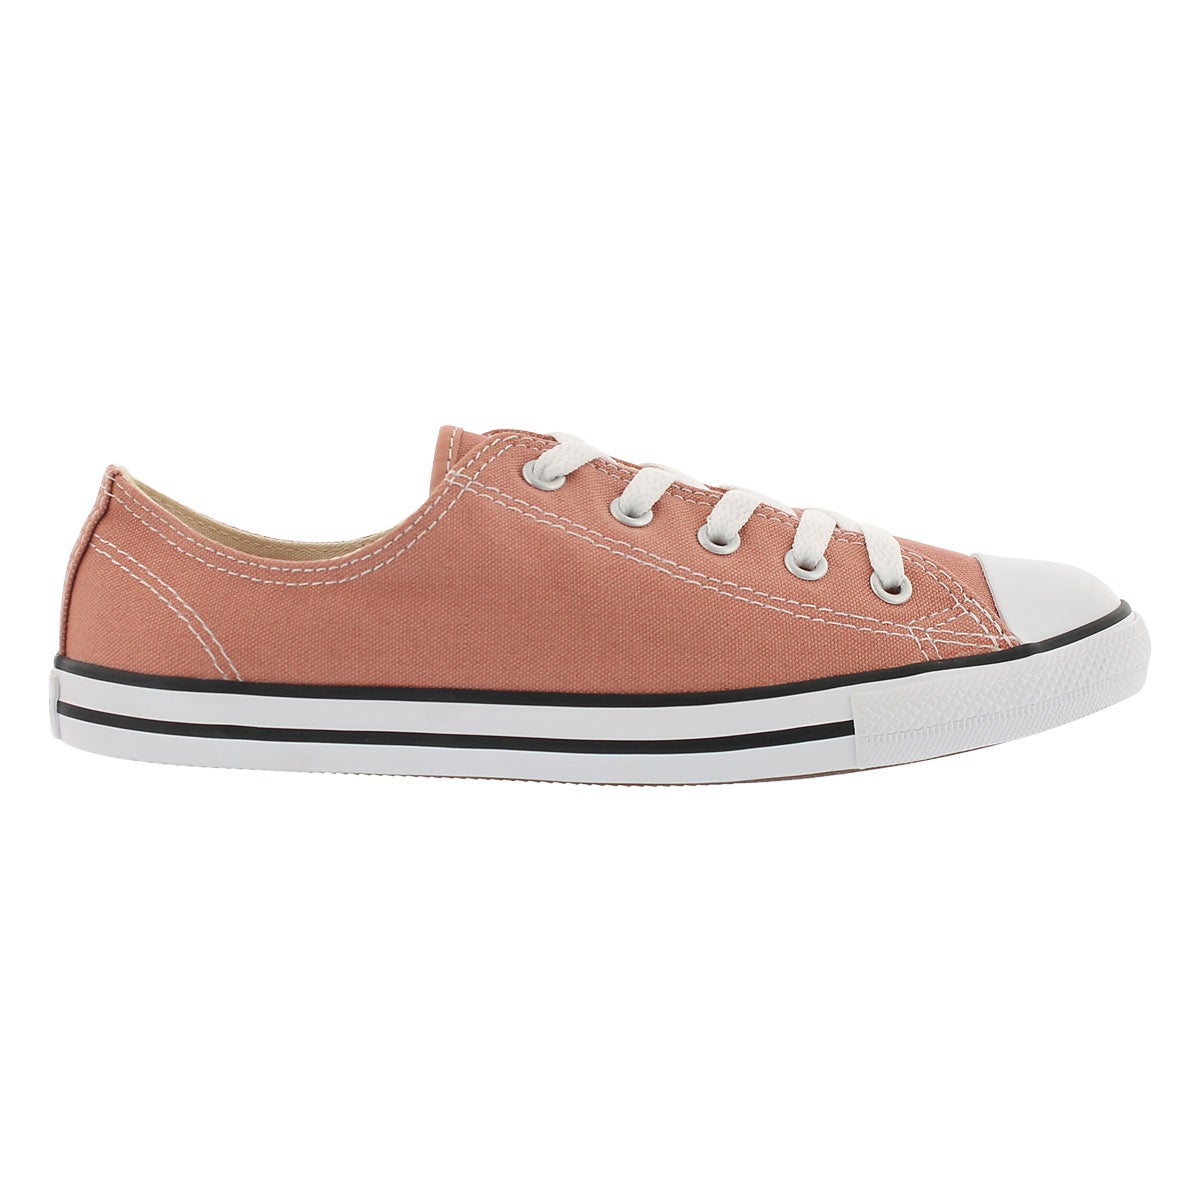 Lds CT A/S Dainty Canvas pnk blush ox